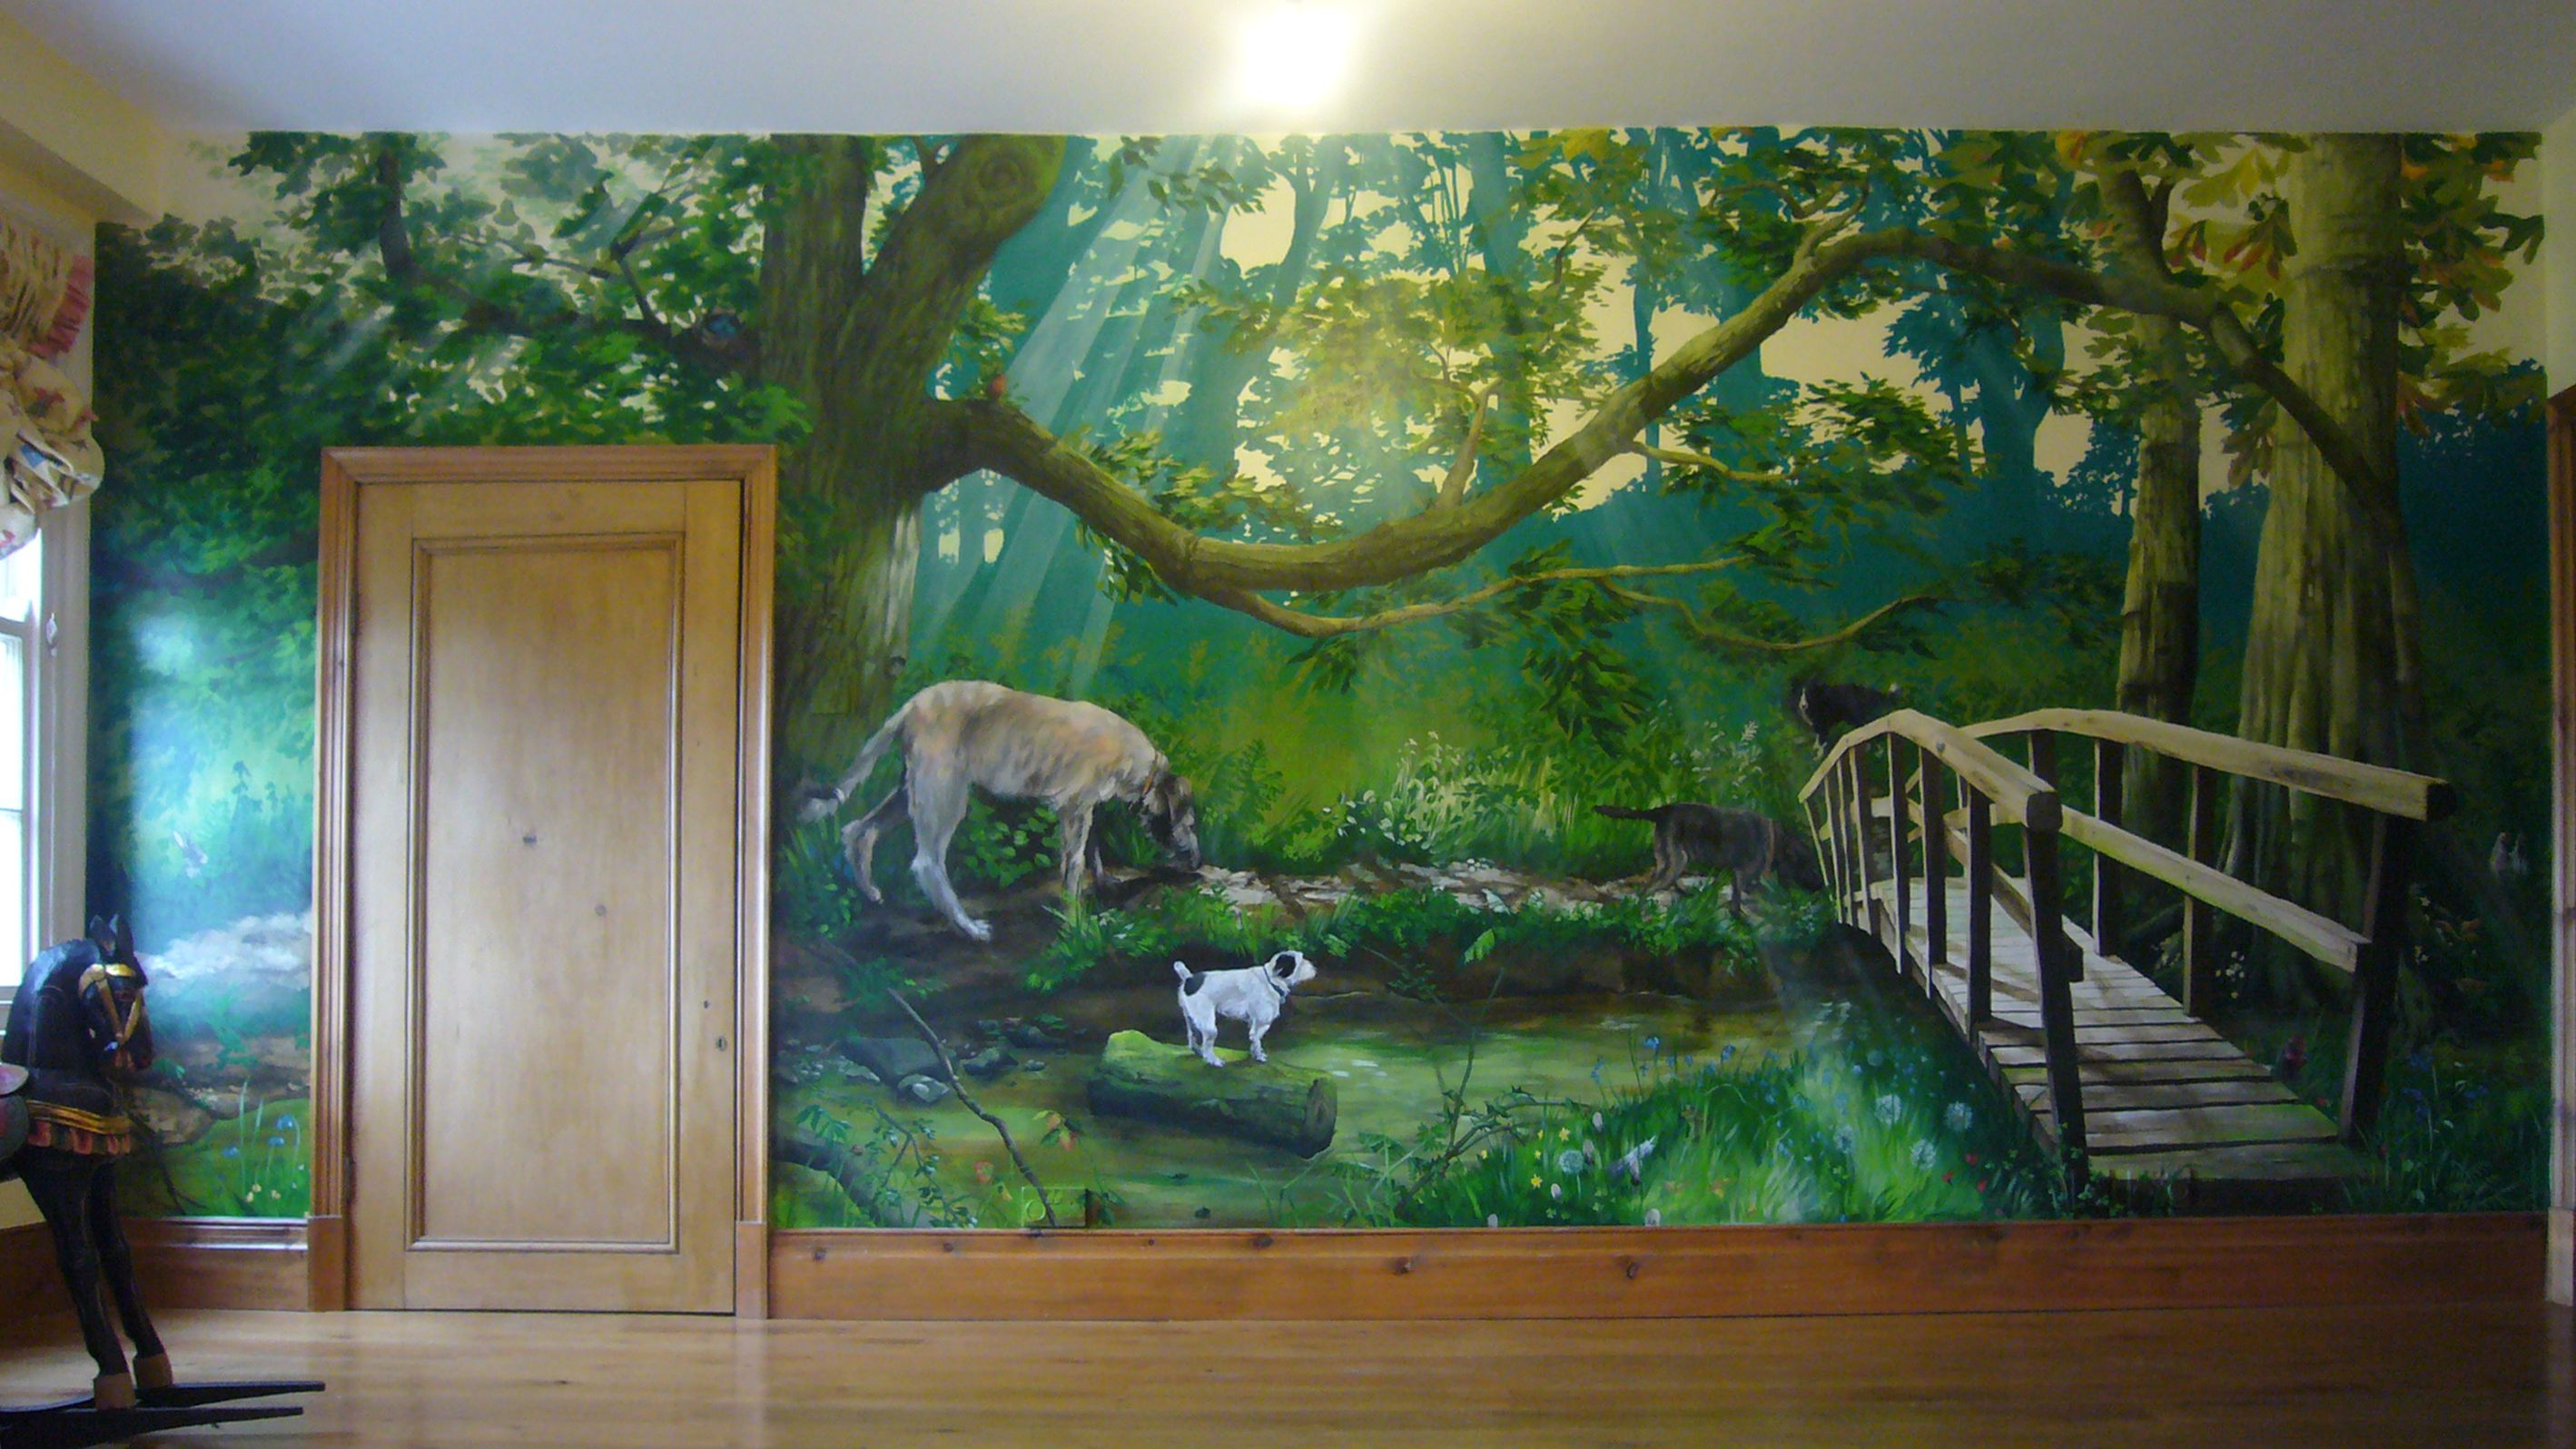 Awesome A Hand Painted Forest Mural On A Childu0027s Bedroom Wall, Showing Detailed  Family Pets Part 30